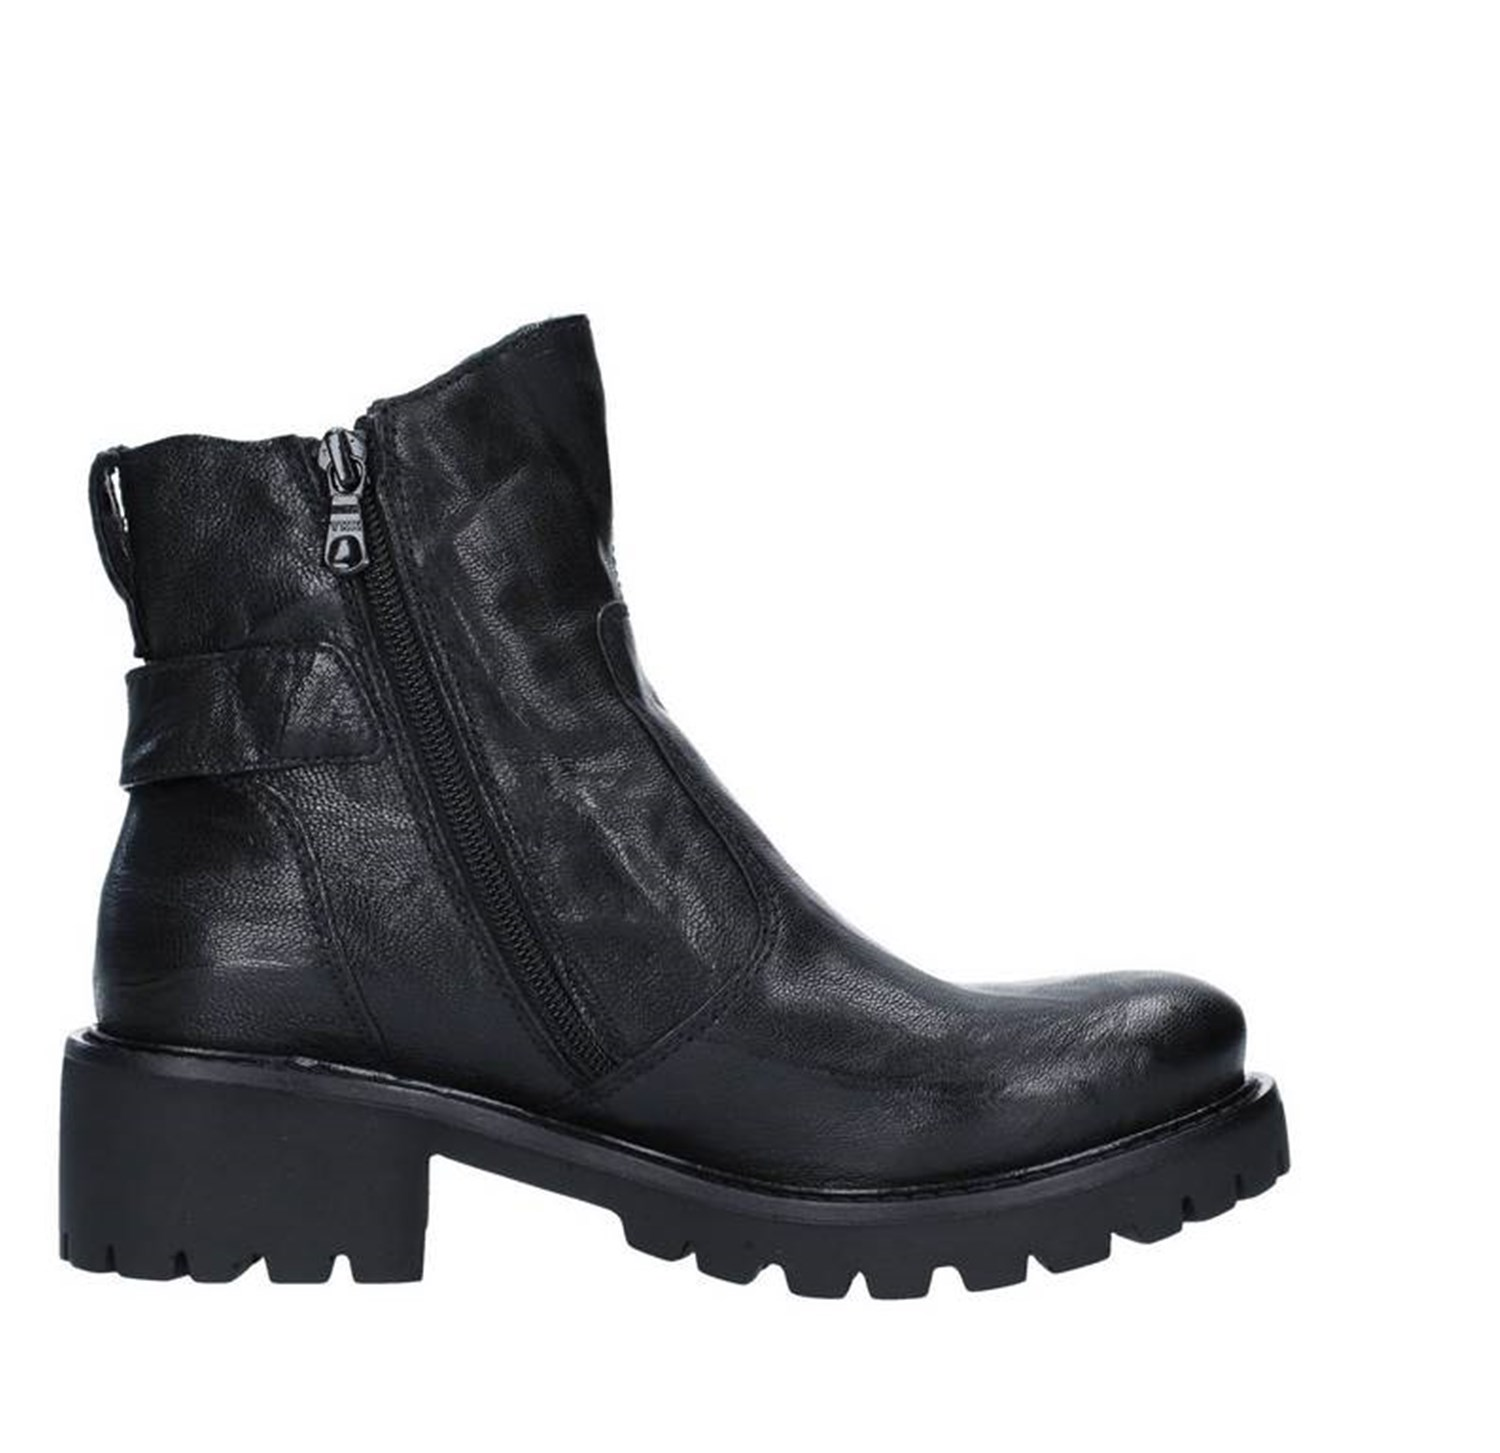 Nero Giardini Shoes Woman boots BLACK A807147D